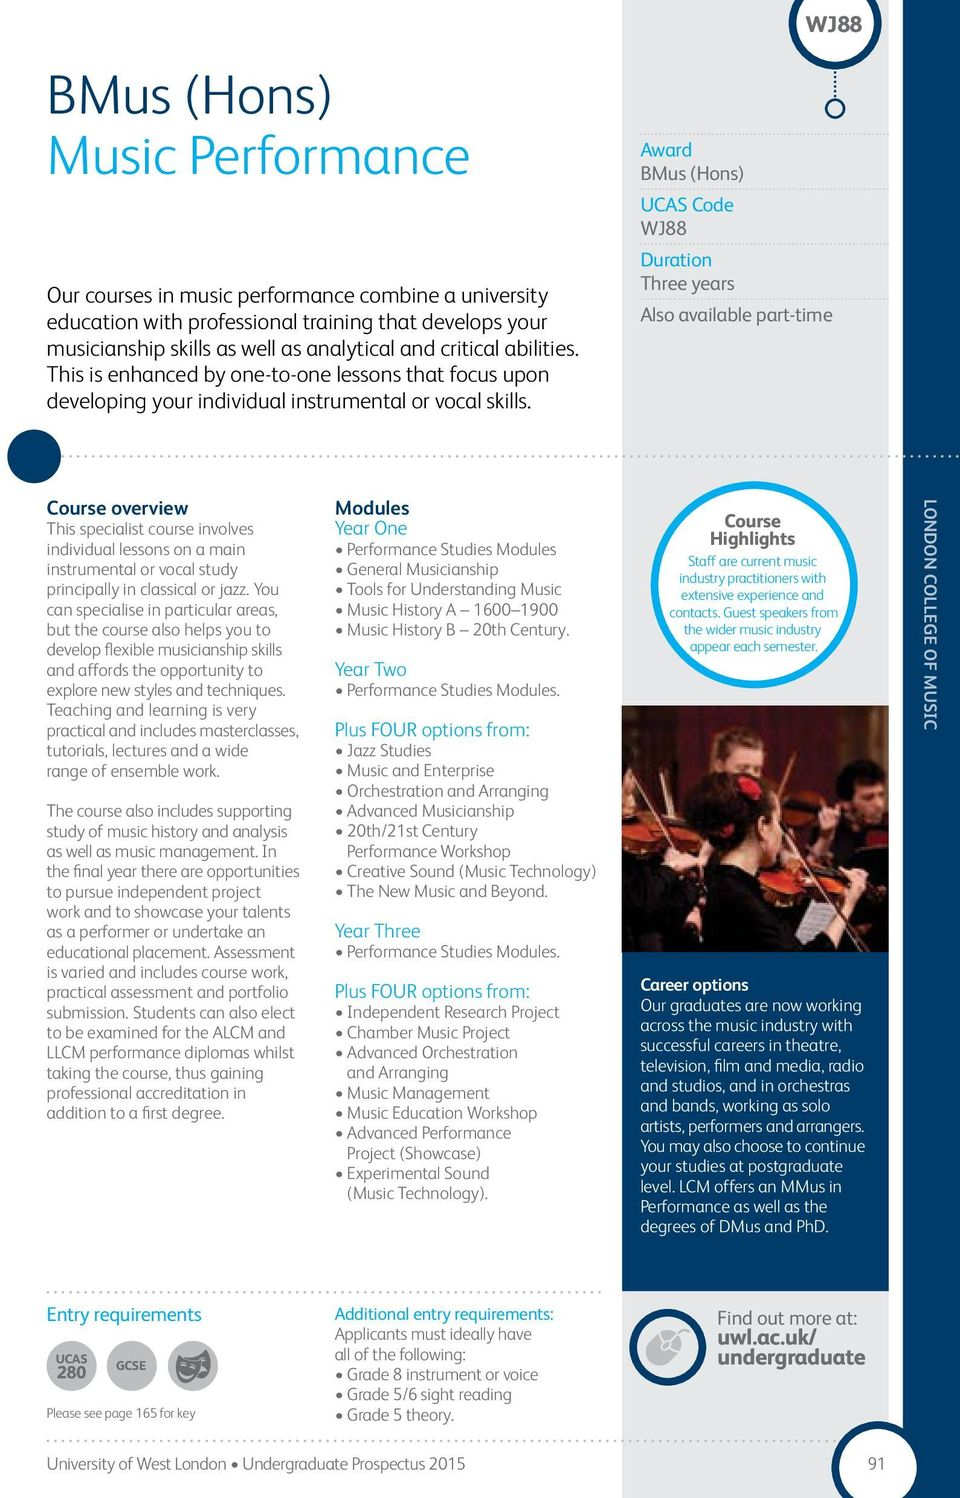 WJ88 overview This specialist course involves individual lessons on a main instrumental or vocal study principally in classical or jazz.